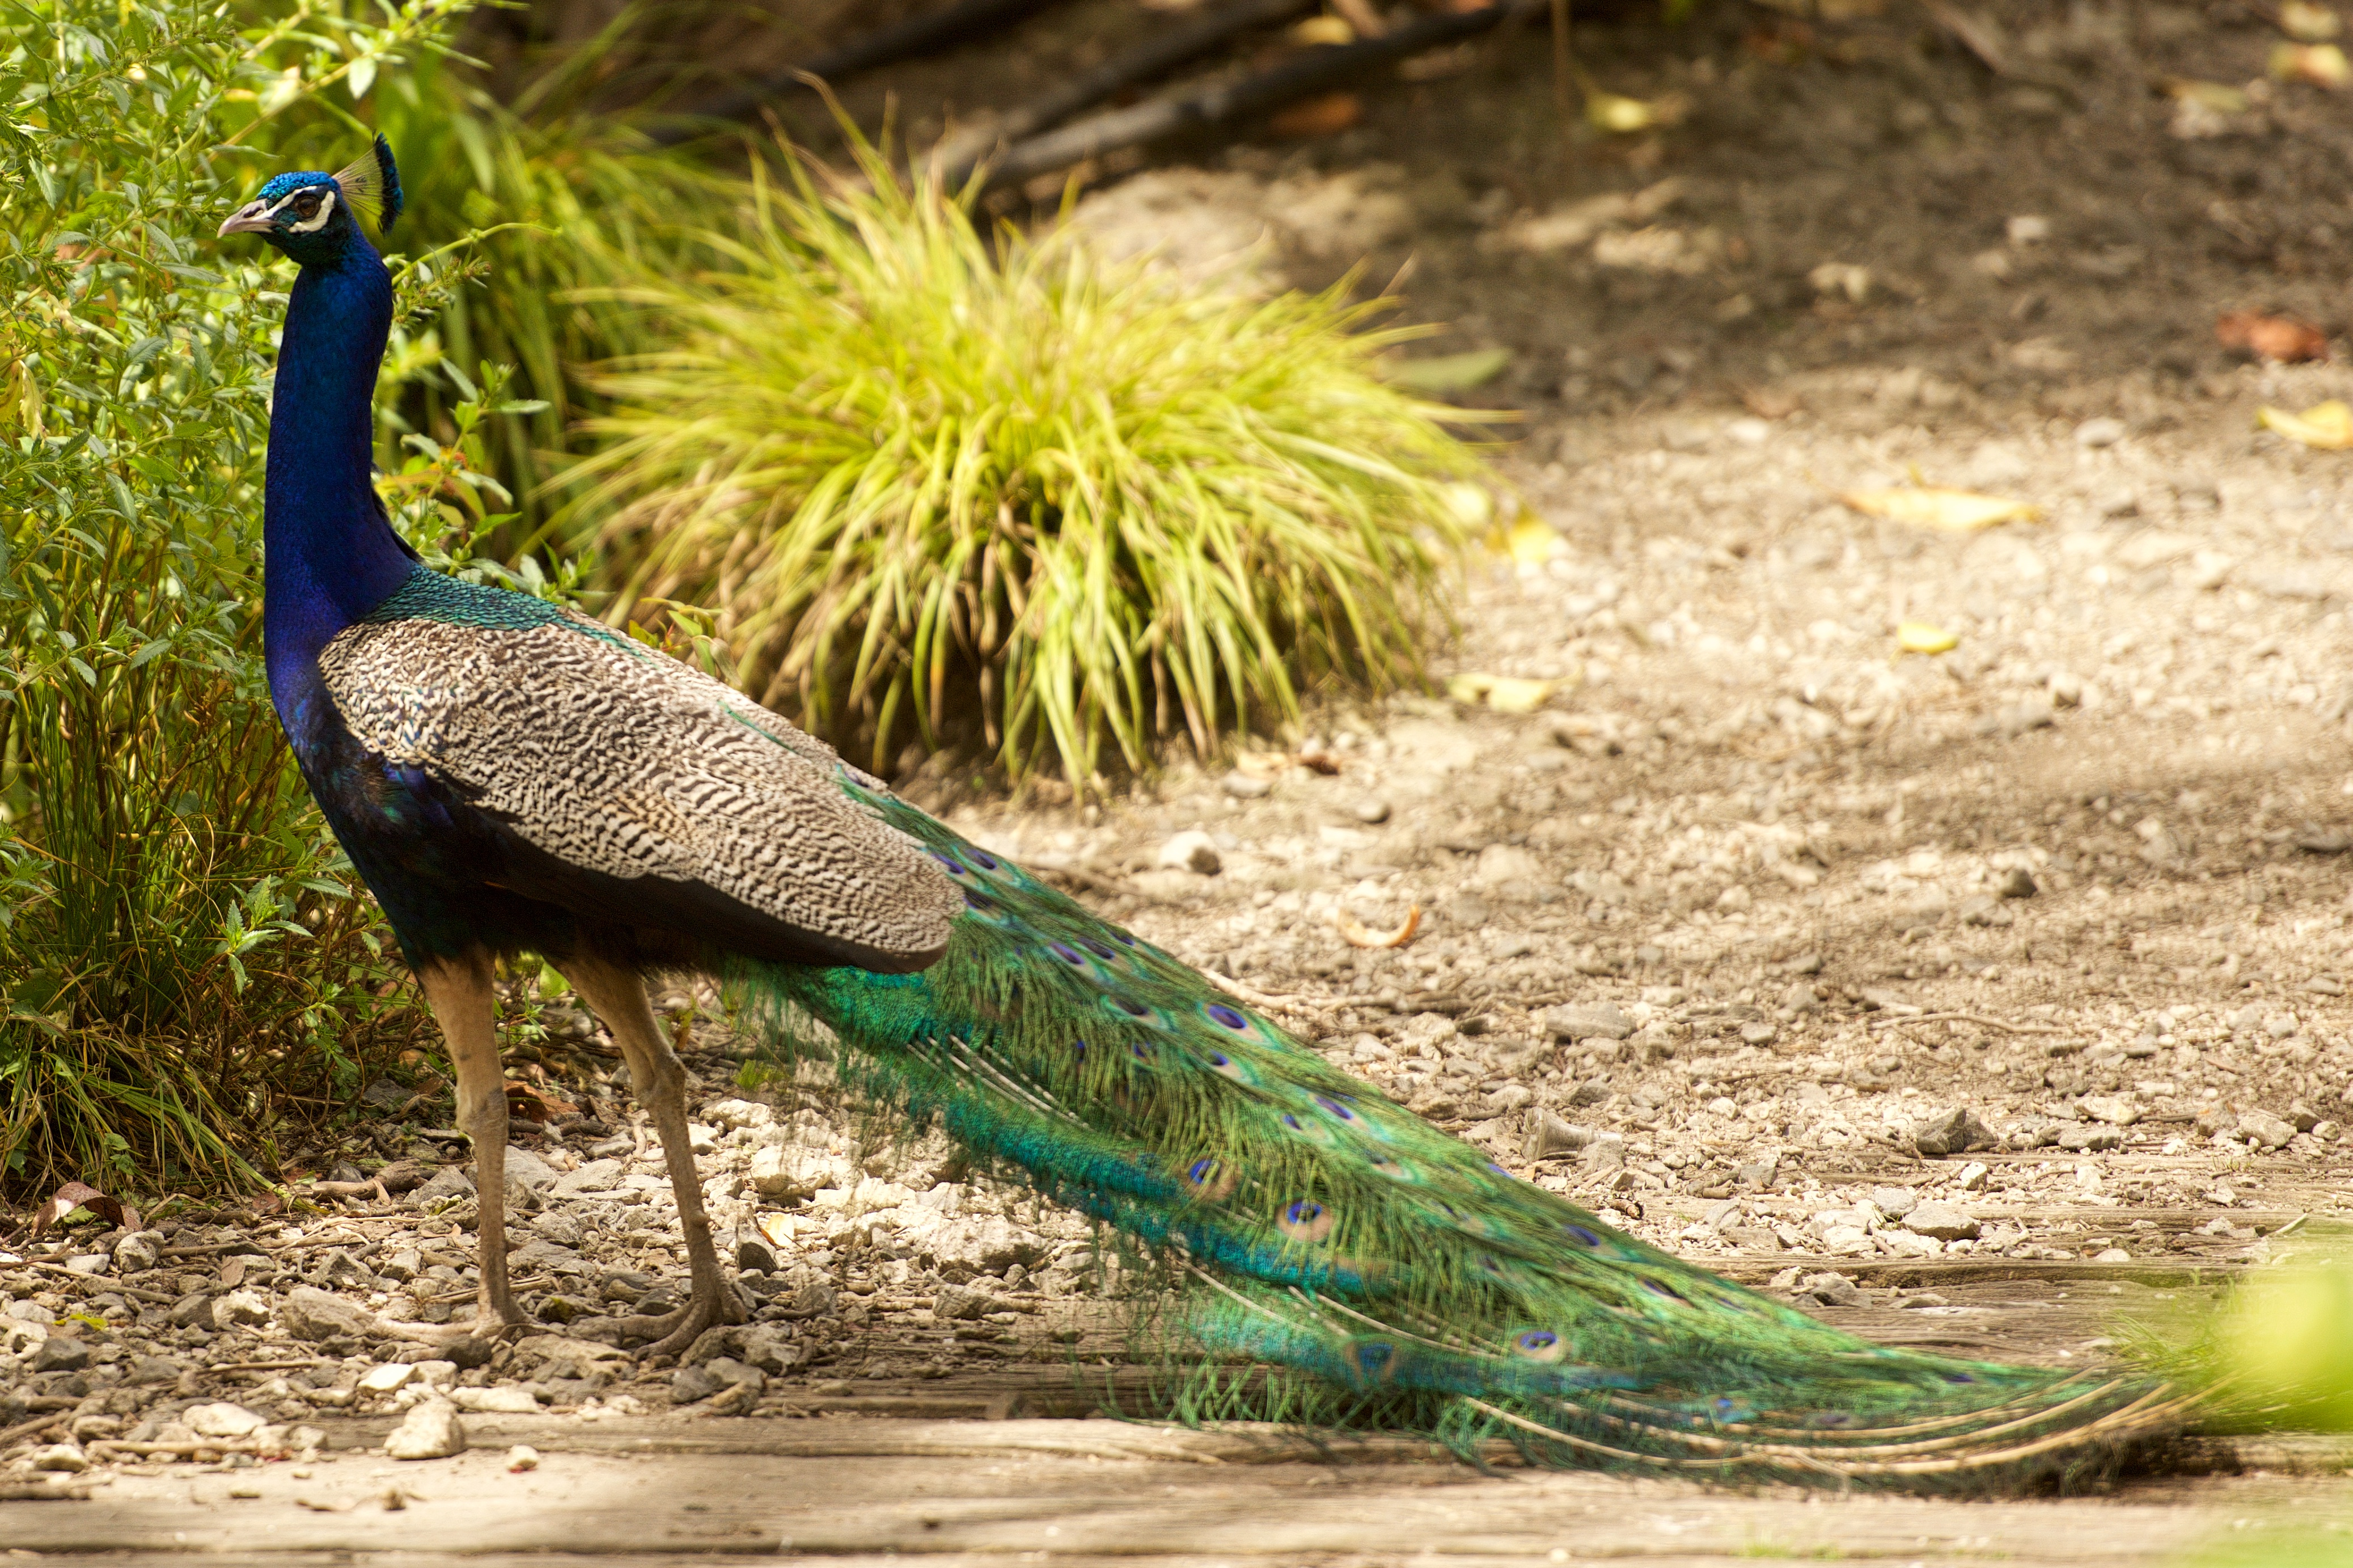 information about peacock bird You'll have a brief but complete information about where do peacocks live, peacocks habitat, facts about peacocks and different types of peacocks.